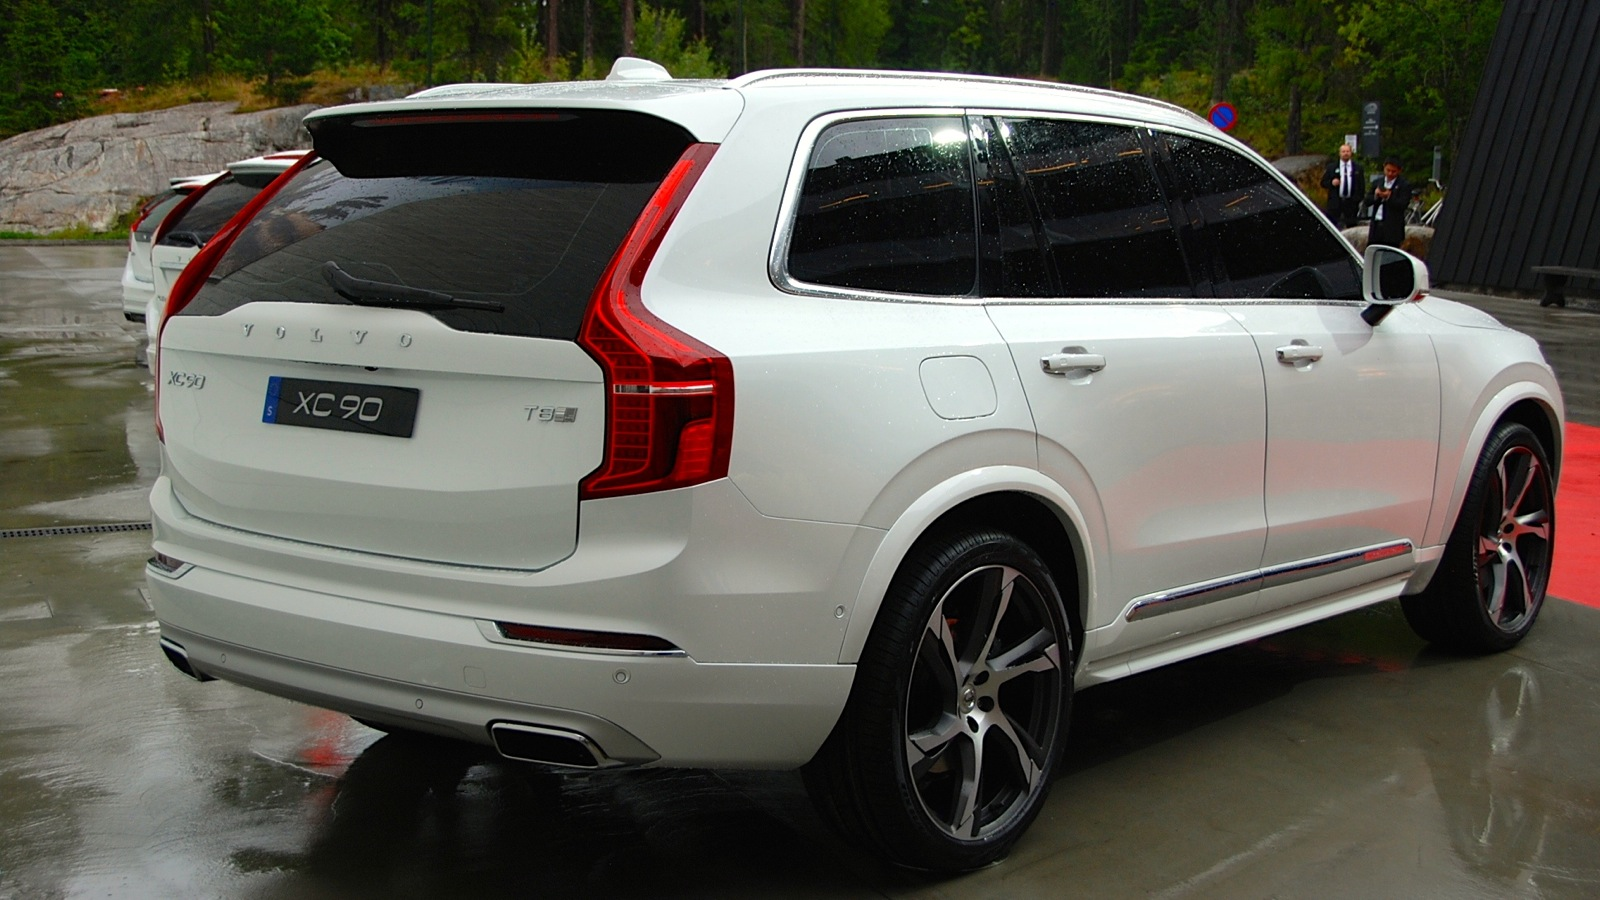 2015 volvo xc90 details revealed photos 1 of 39. Black Bedroom Furniture Sets. Home Design Ideas